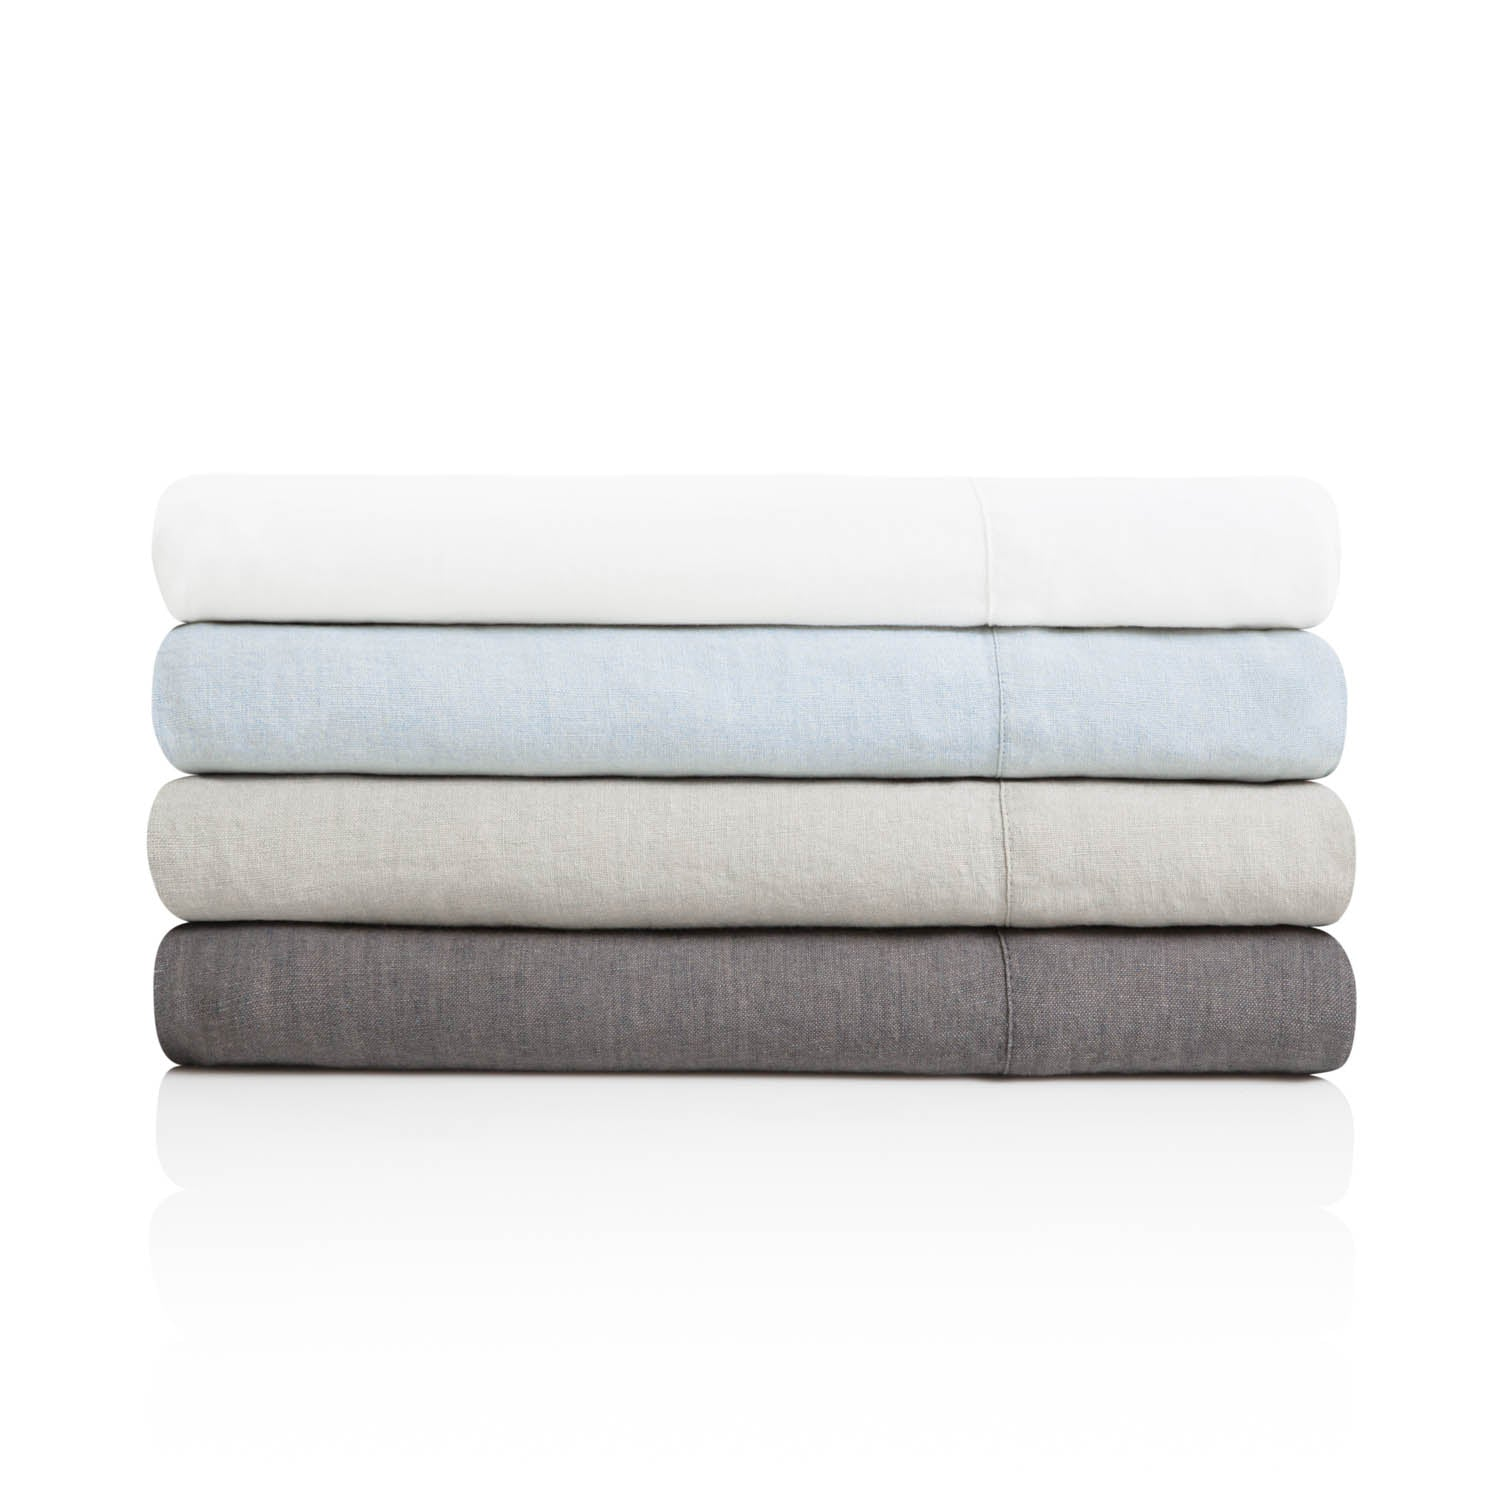 French Linen Sheets - Ultimate Comfort Sleep